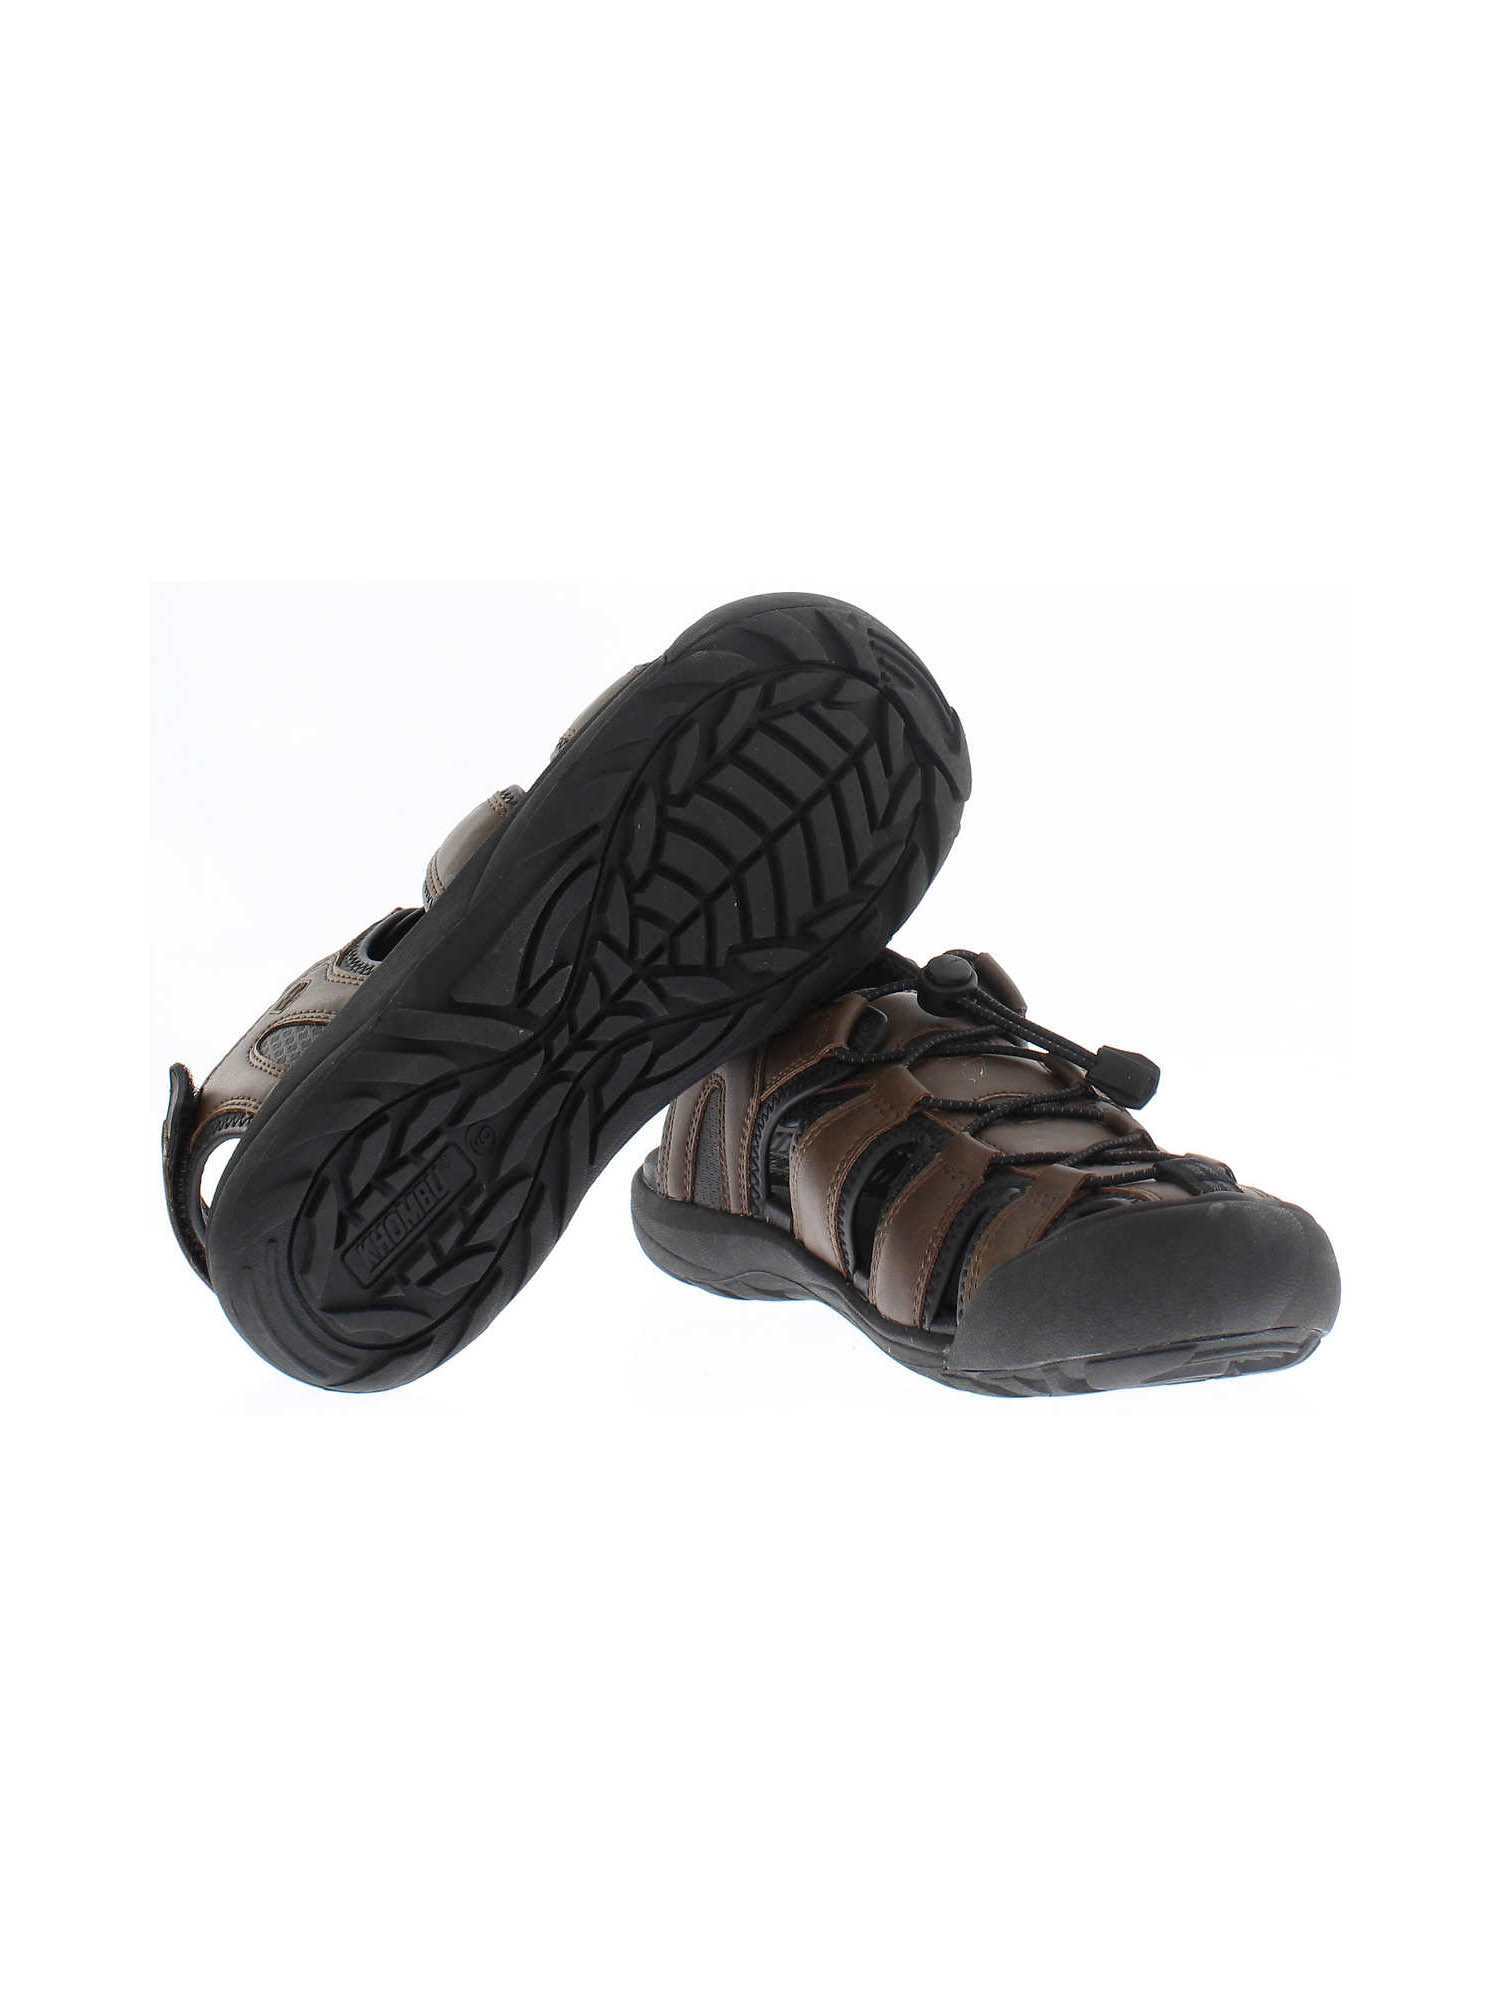 NEW Khombu Men/'s Travis Active Sandal Black Pick A Size